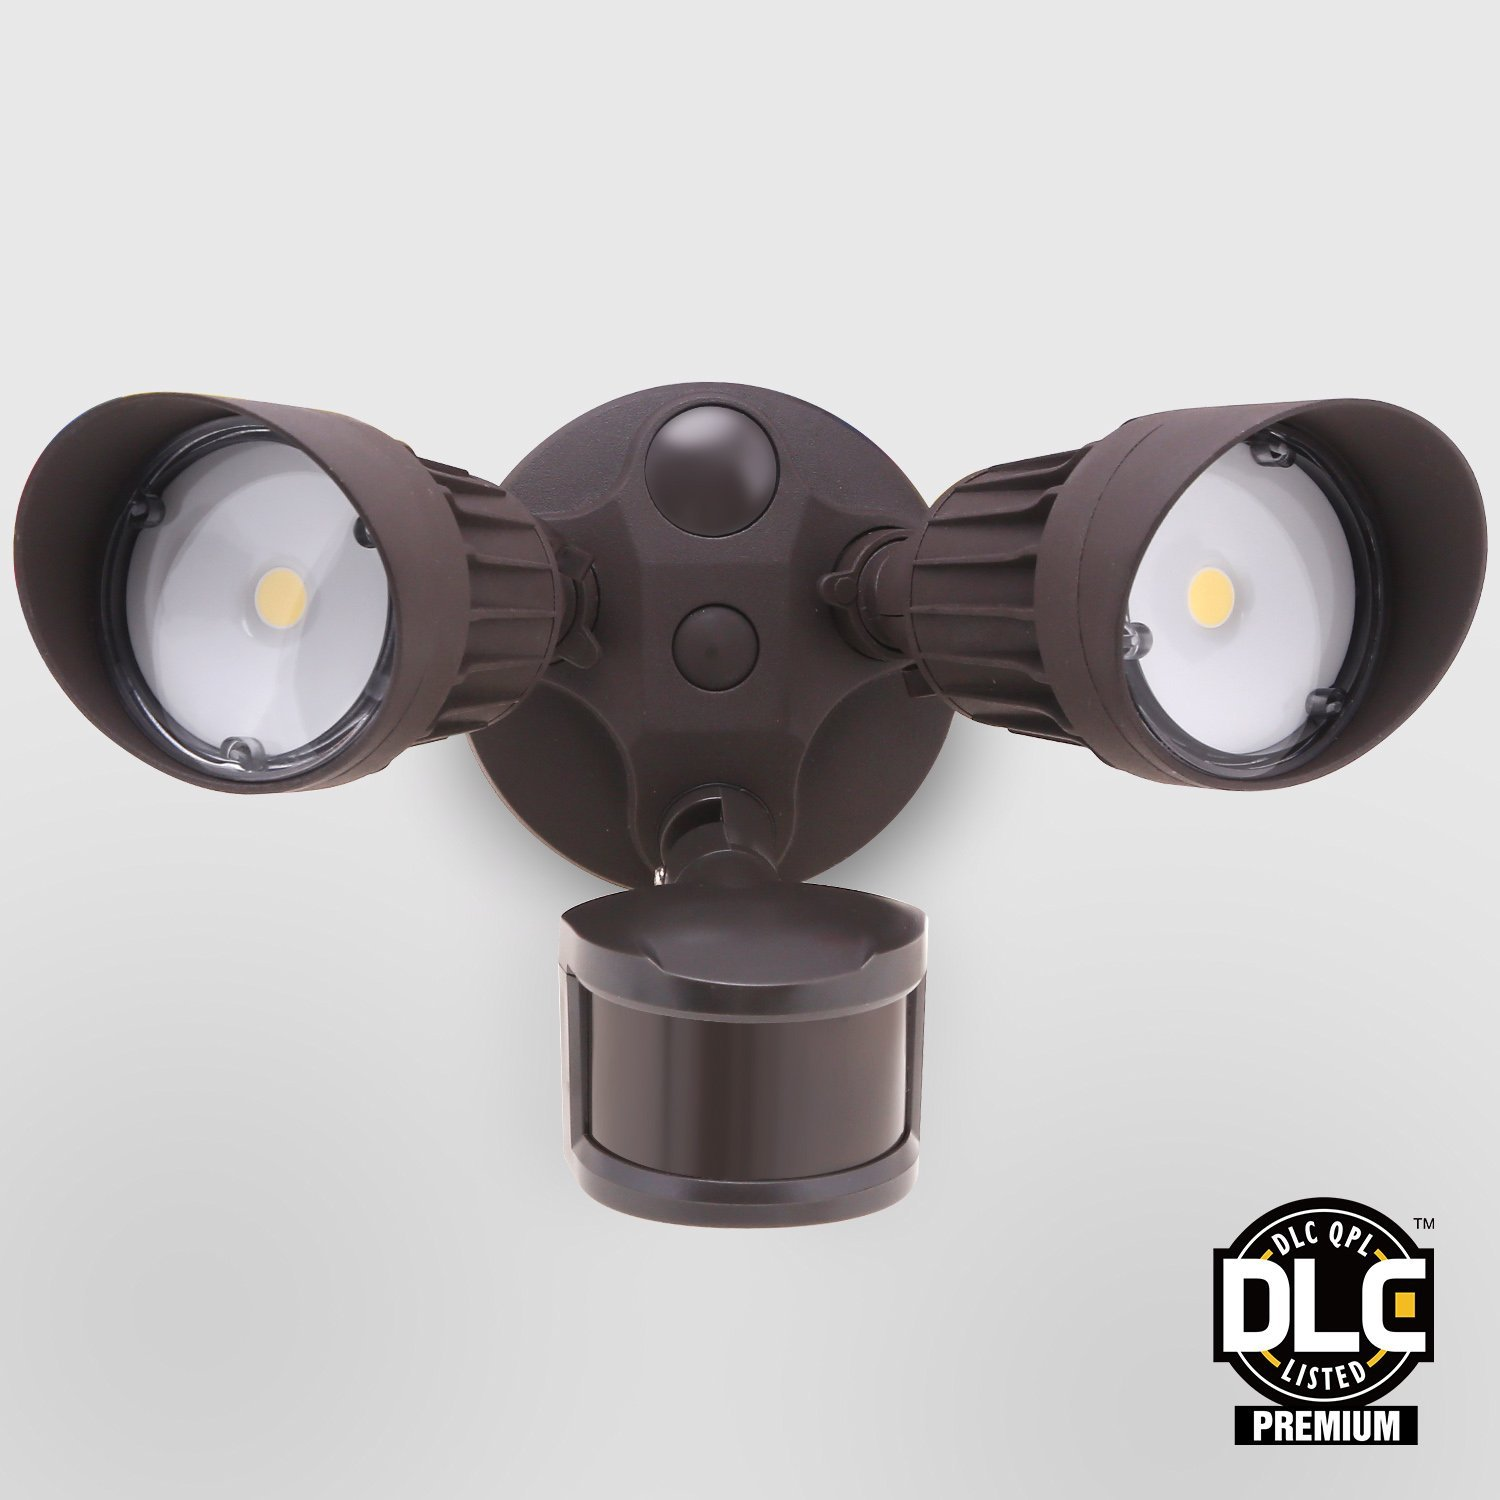 twohead motion activated led outdoor security light photo sensor 20w 120w